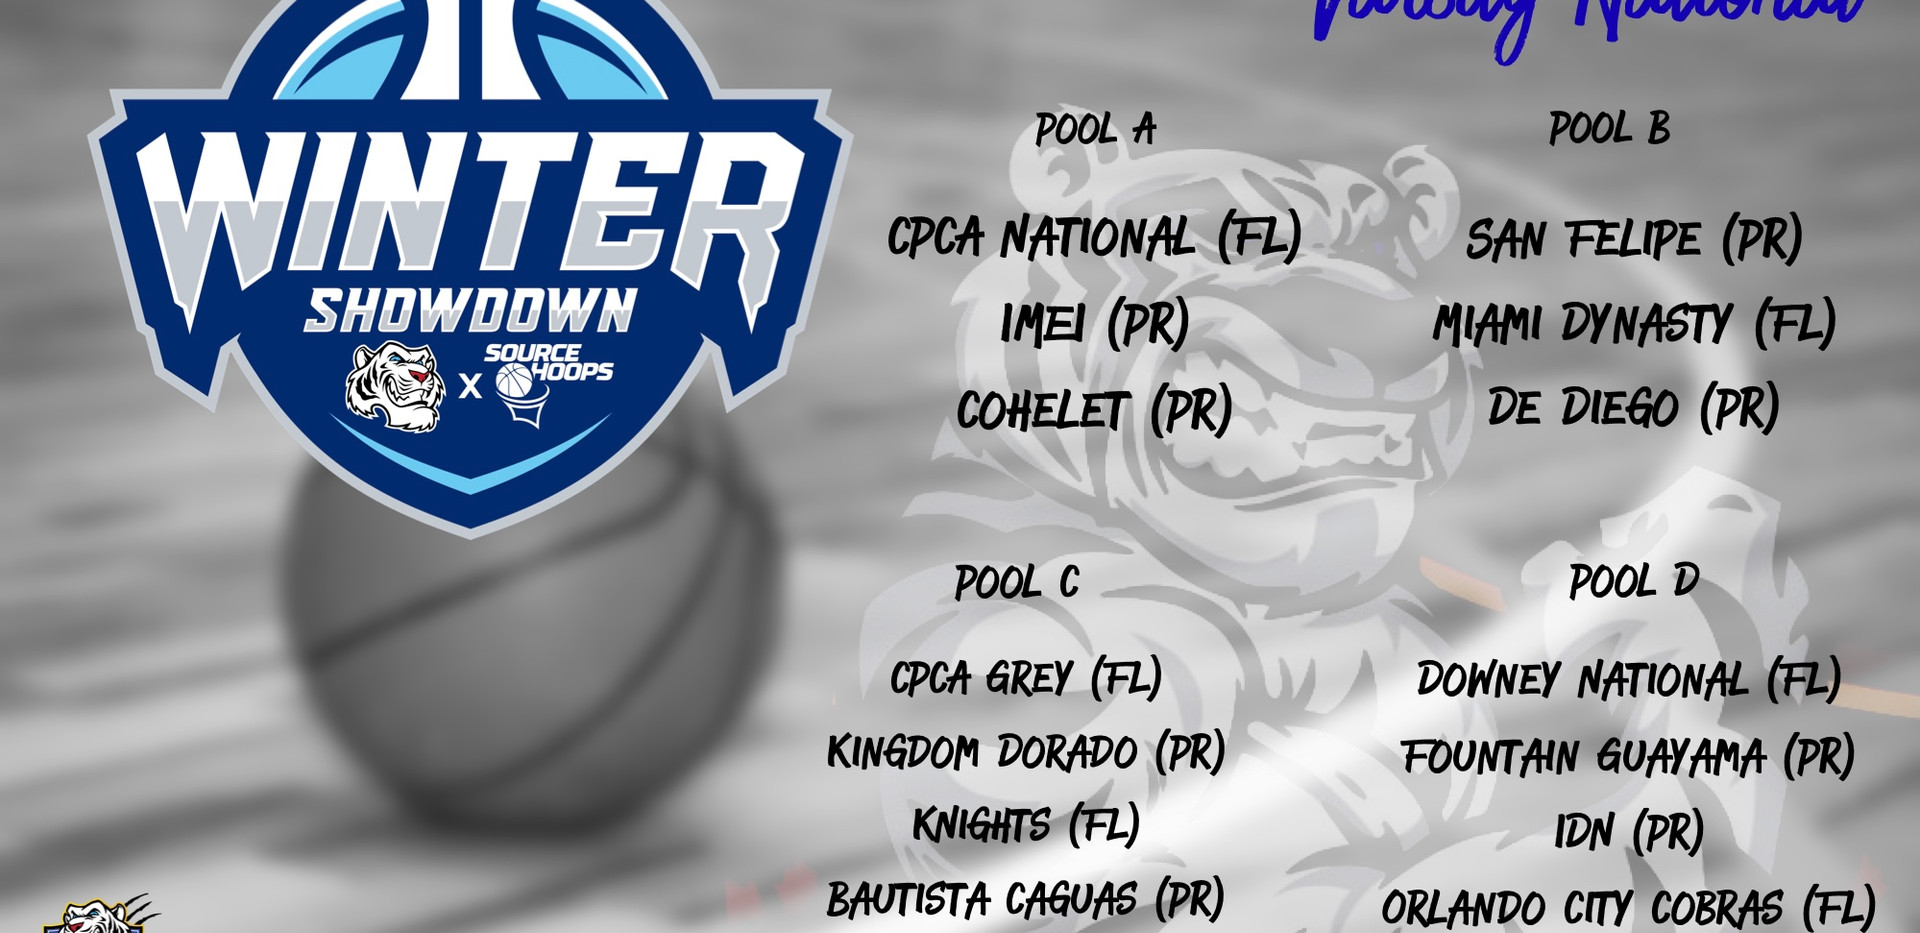 National Division Pools